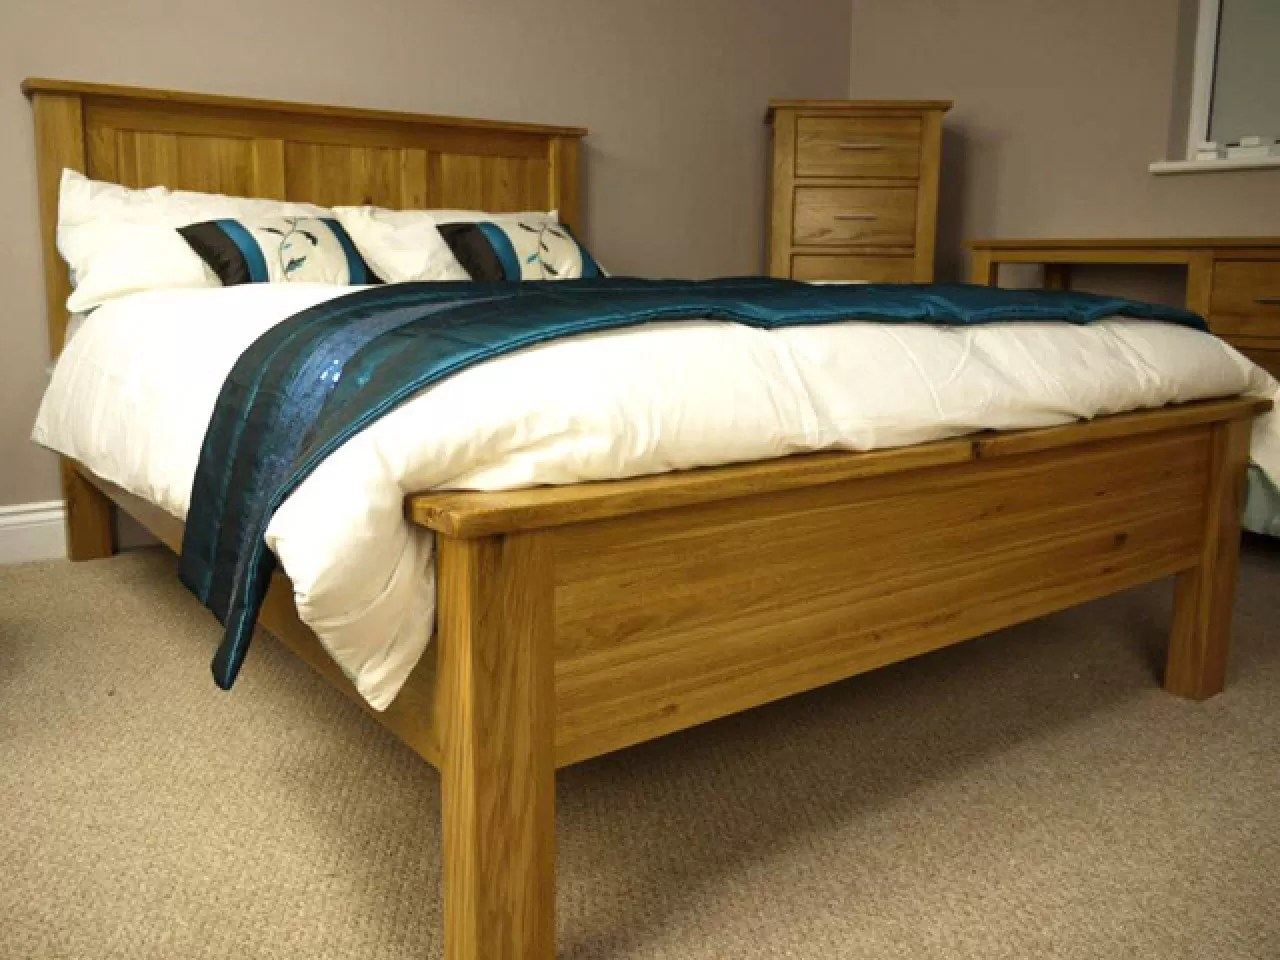 Cheap Wooden Bed Frames How To Build A Wooden Bed Frame 22 Interesting Ways Guide Patterns